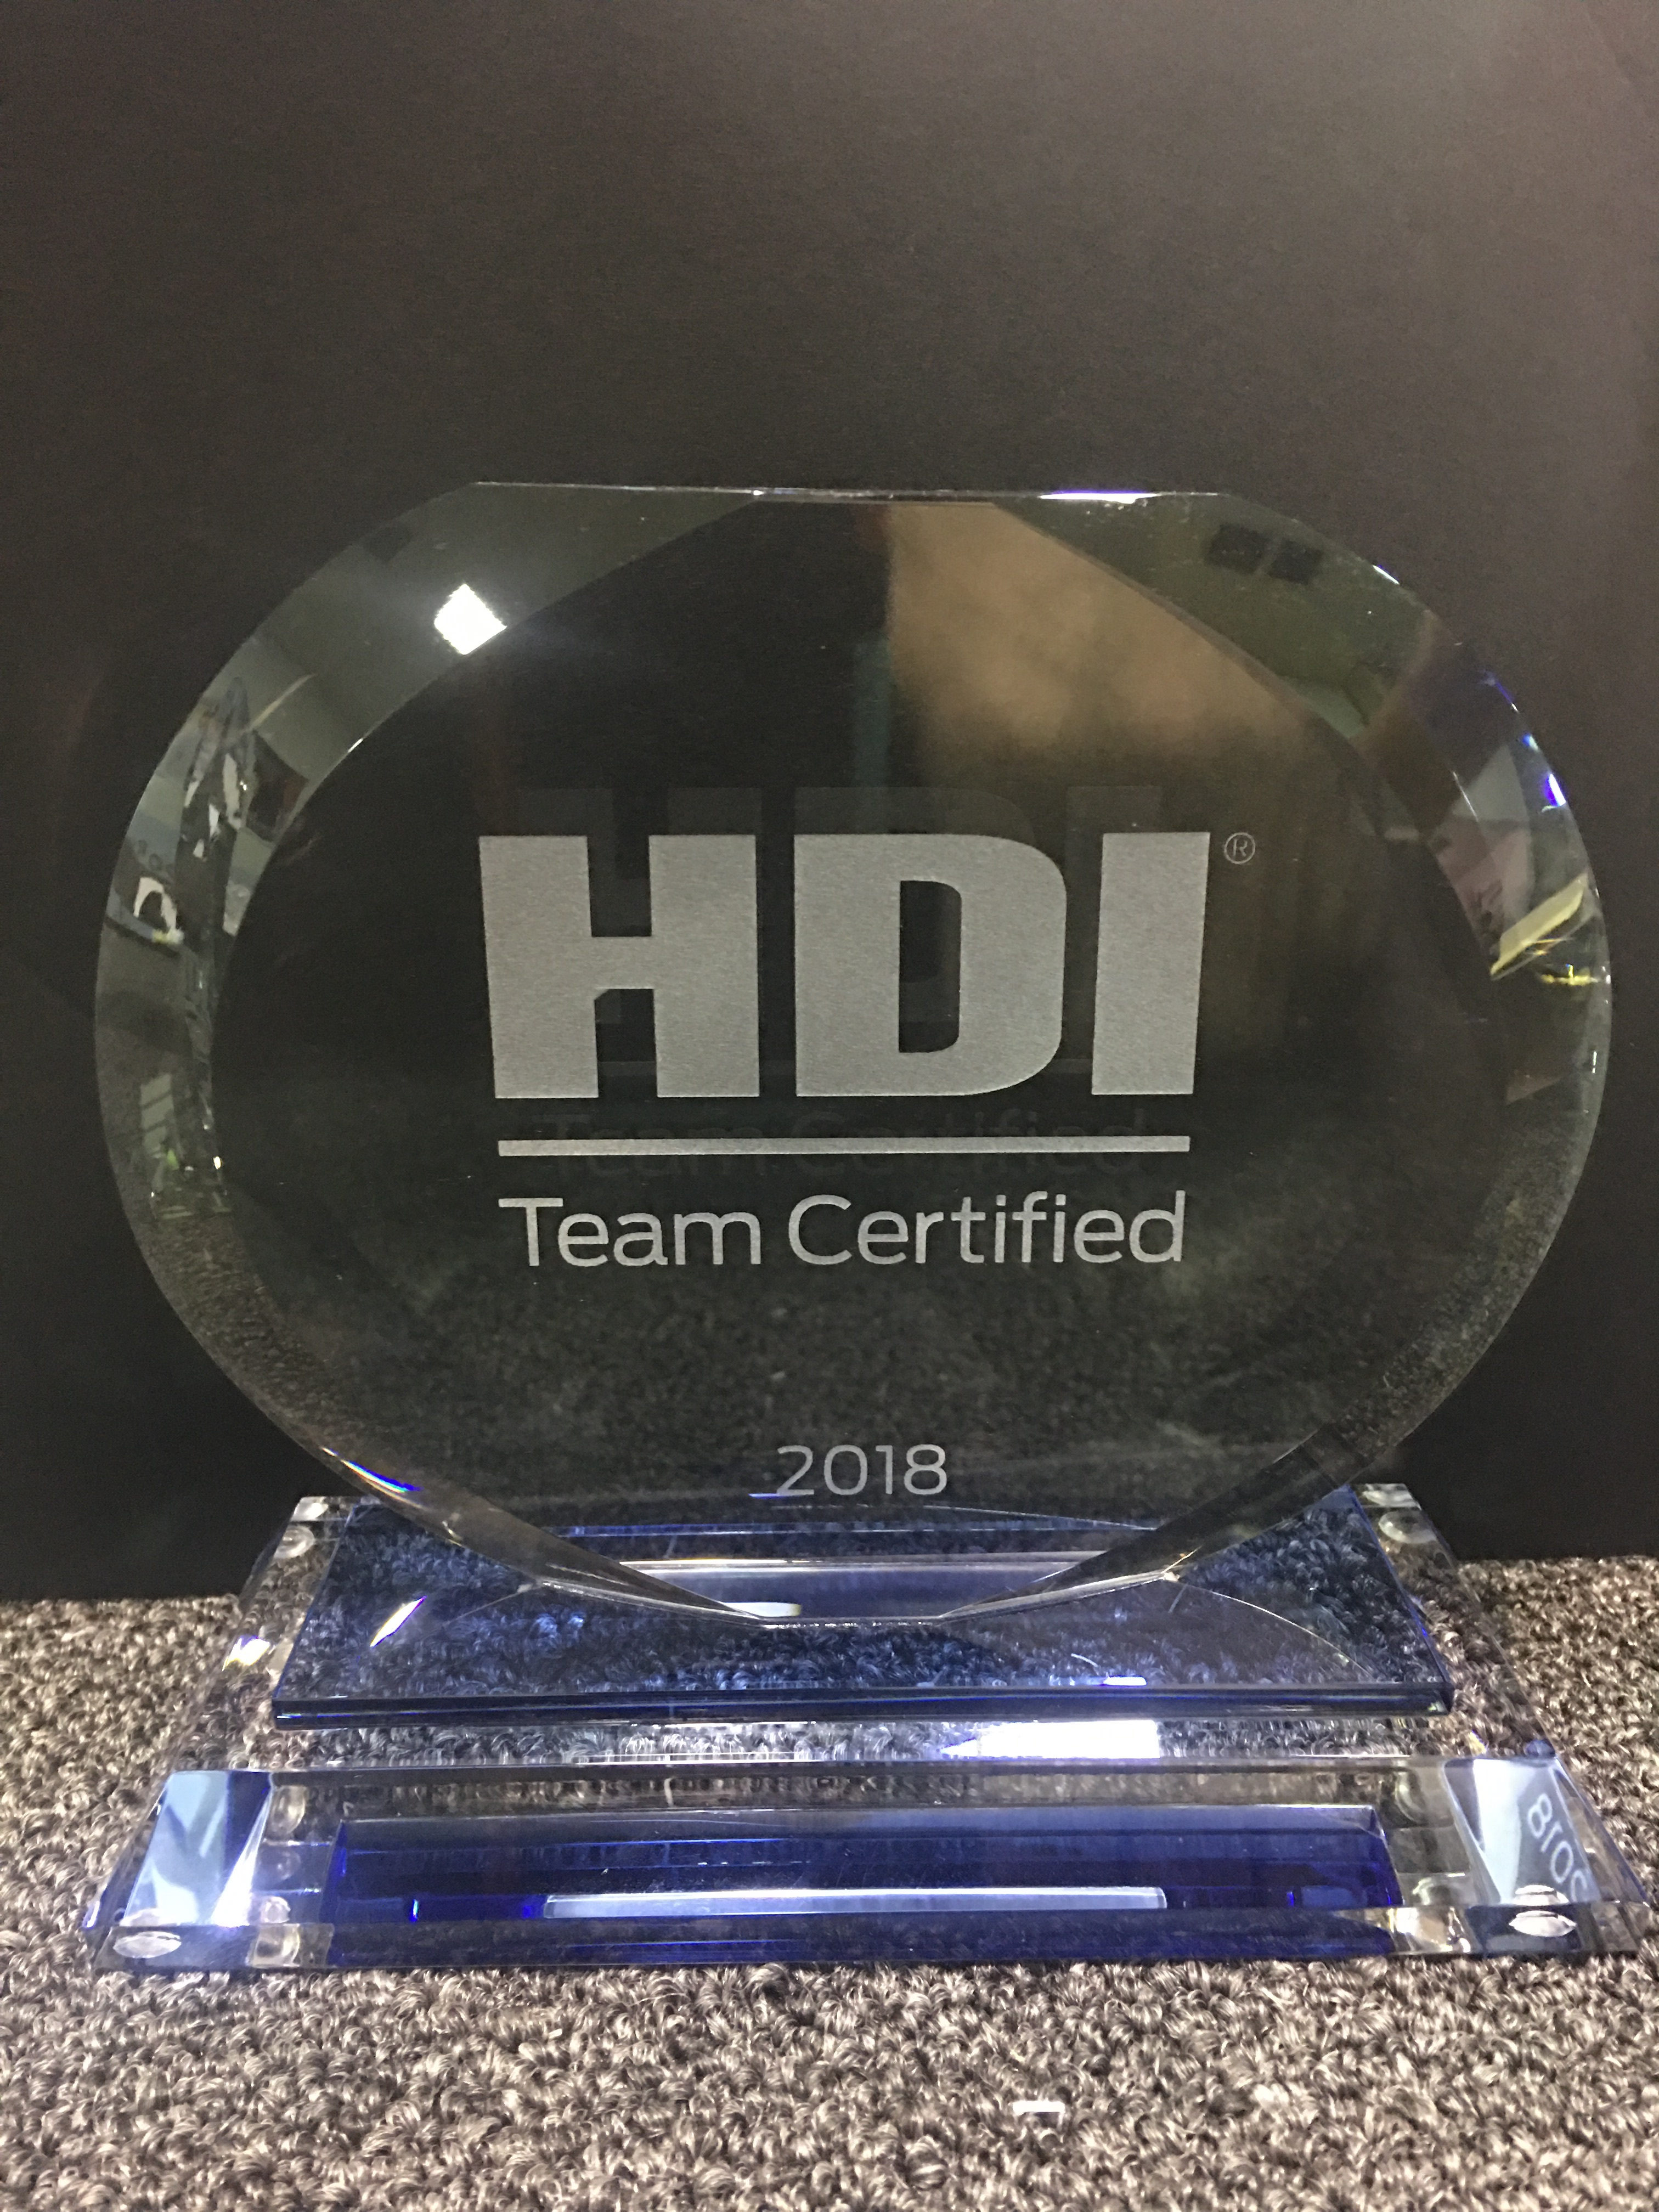 Team Certified Award